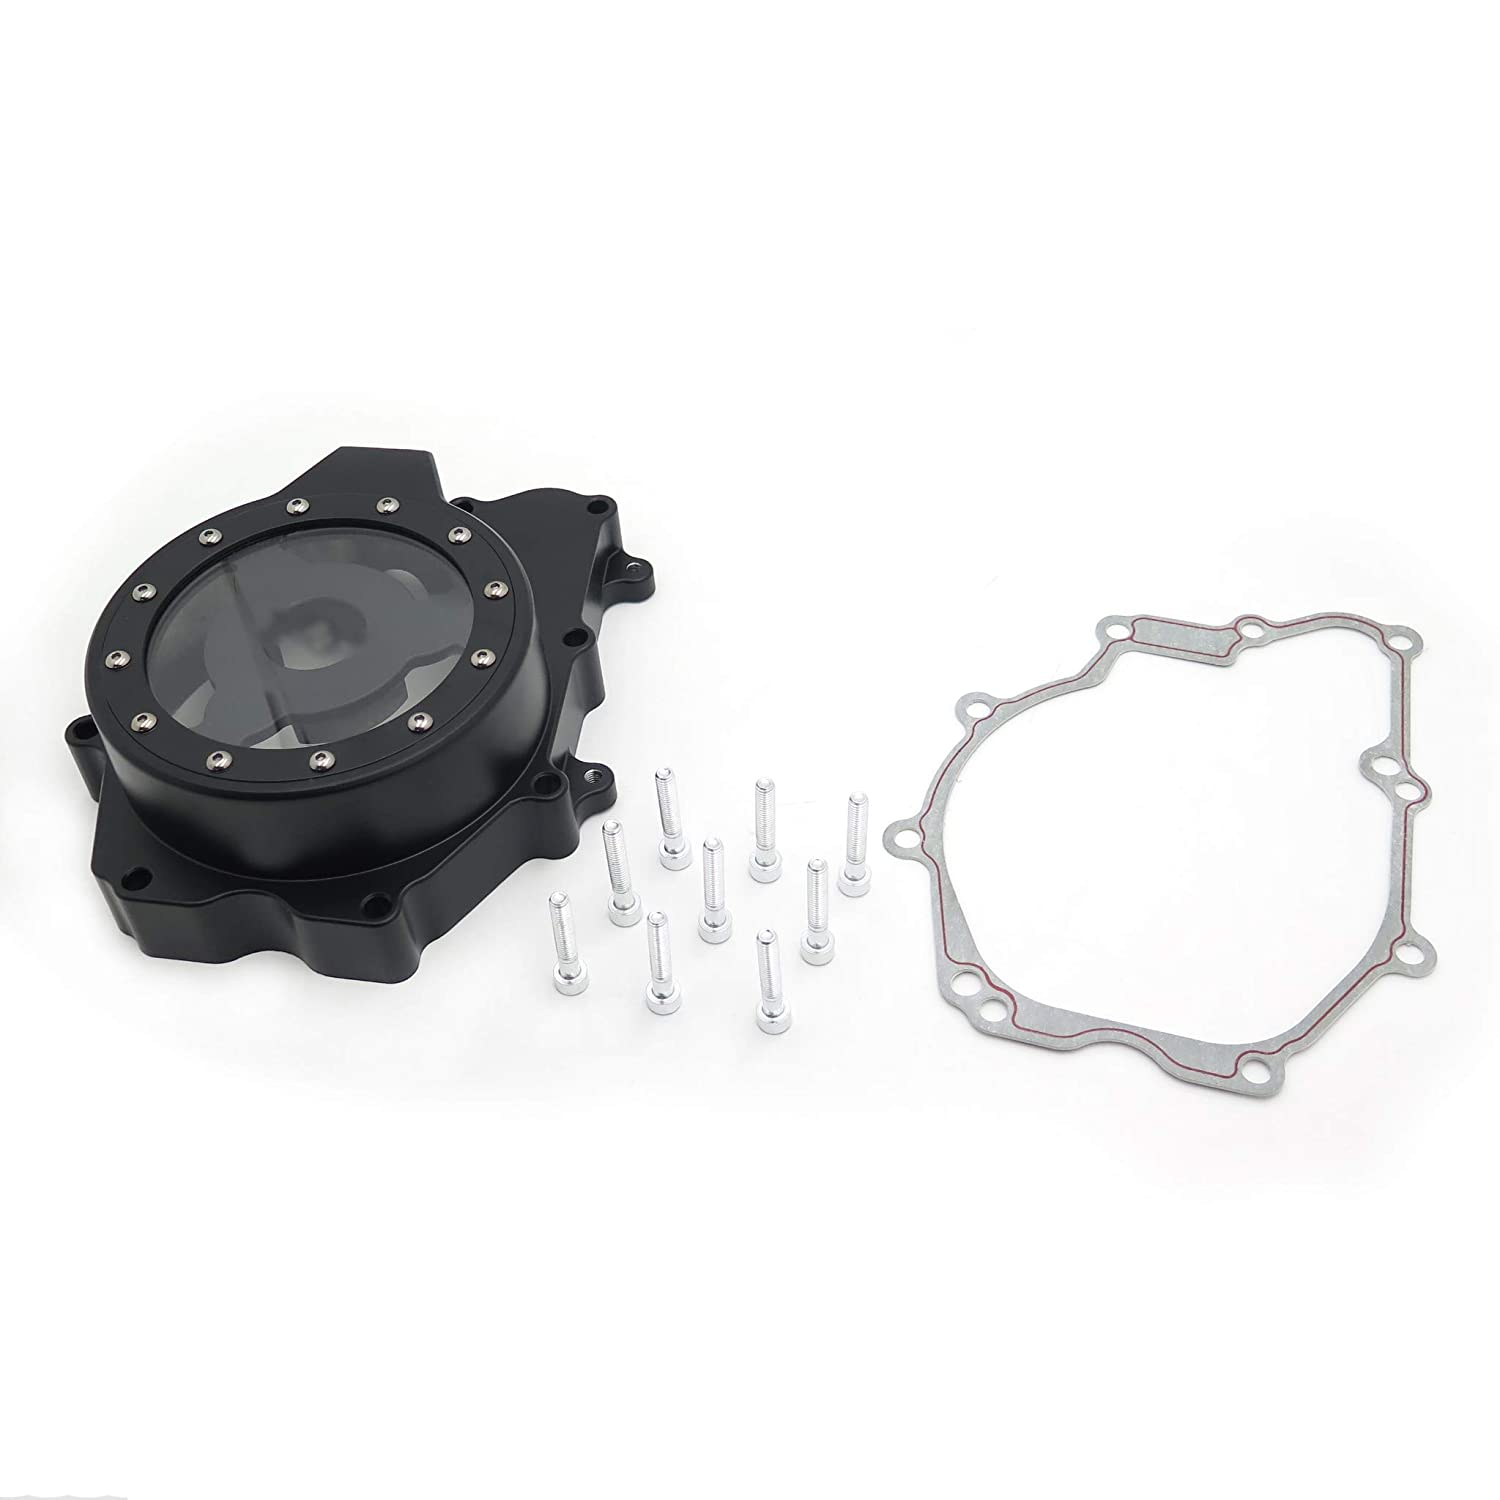 Black Stator Engine Cover See Through For Yamaha 2006 YZF-R6S 2003-2006 YZF-R6 HTT